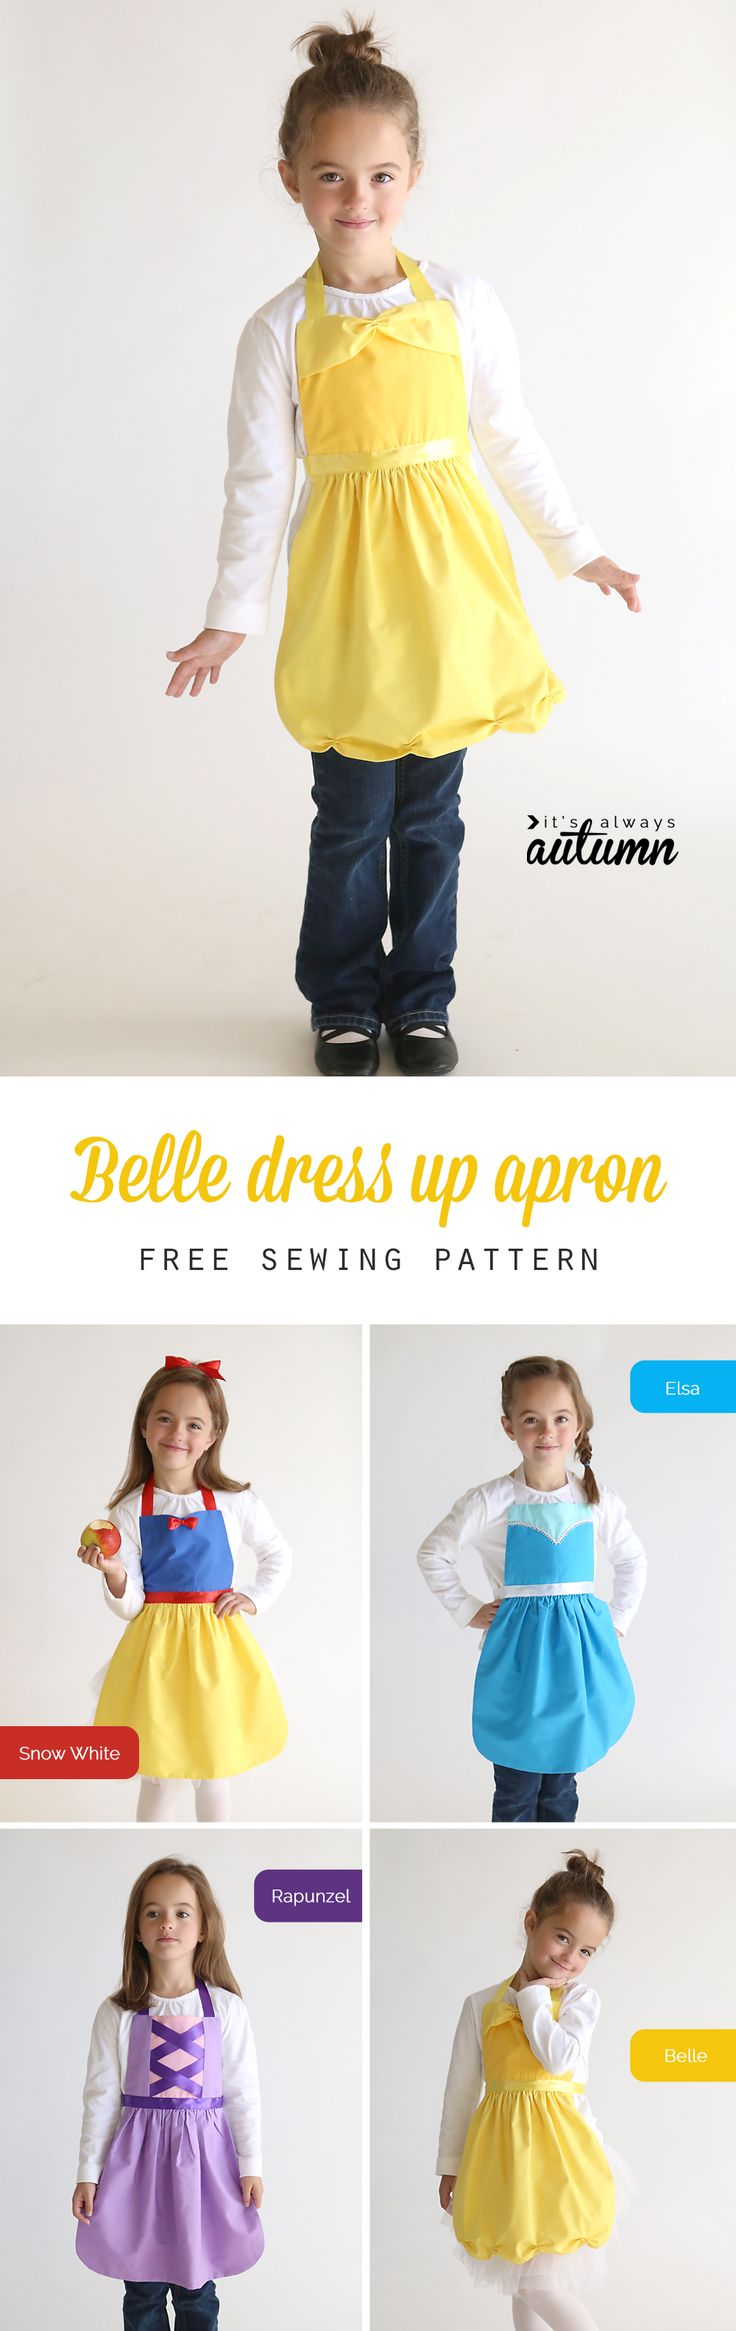 885 best Baby/Kids Sewing images on Pinterest | Baby sewing, Sewing ...